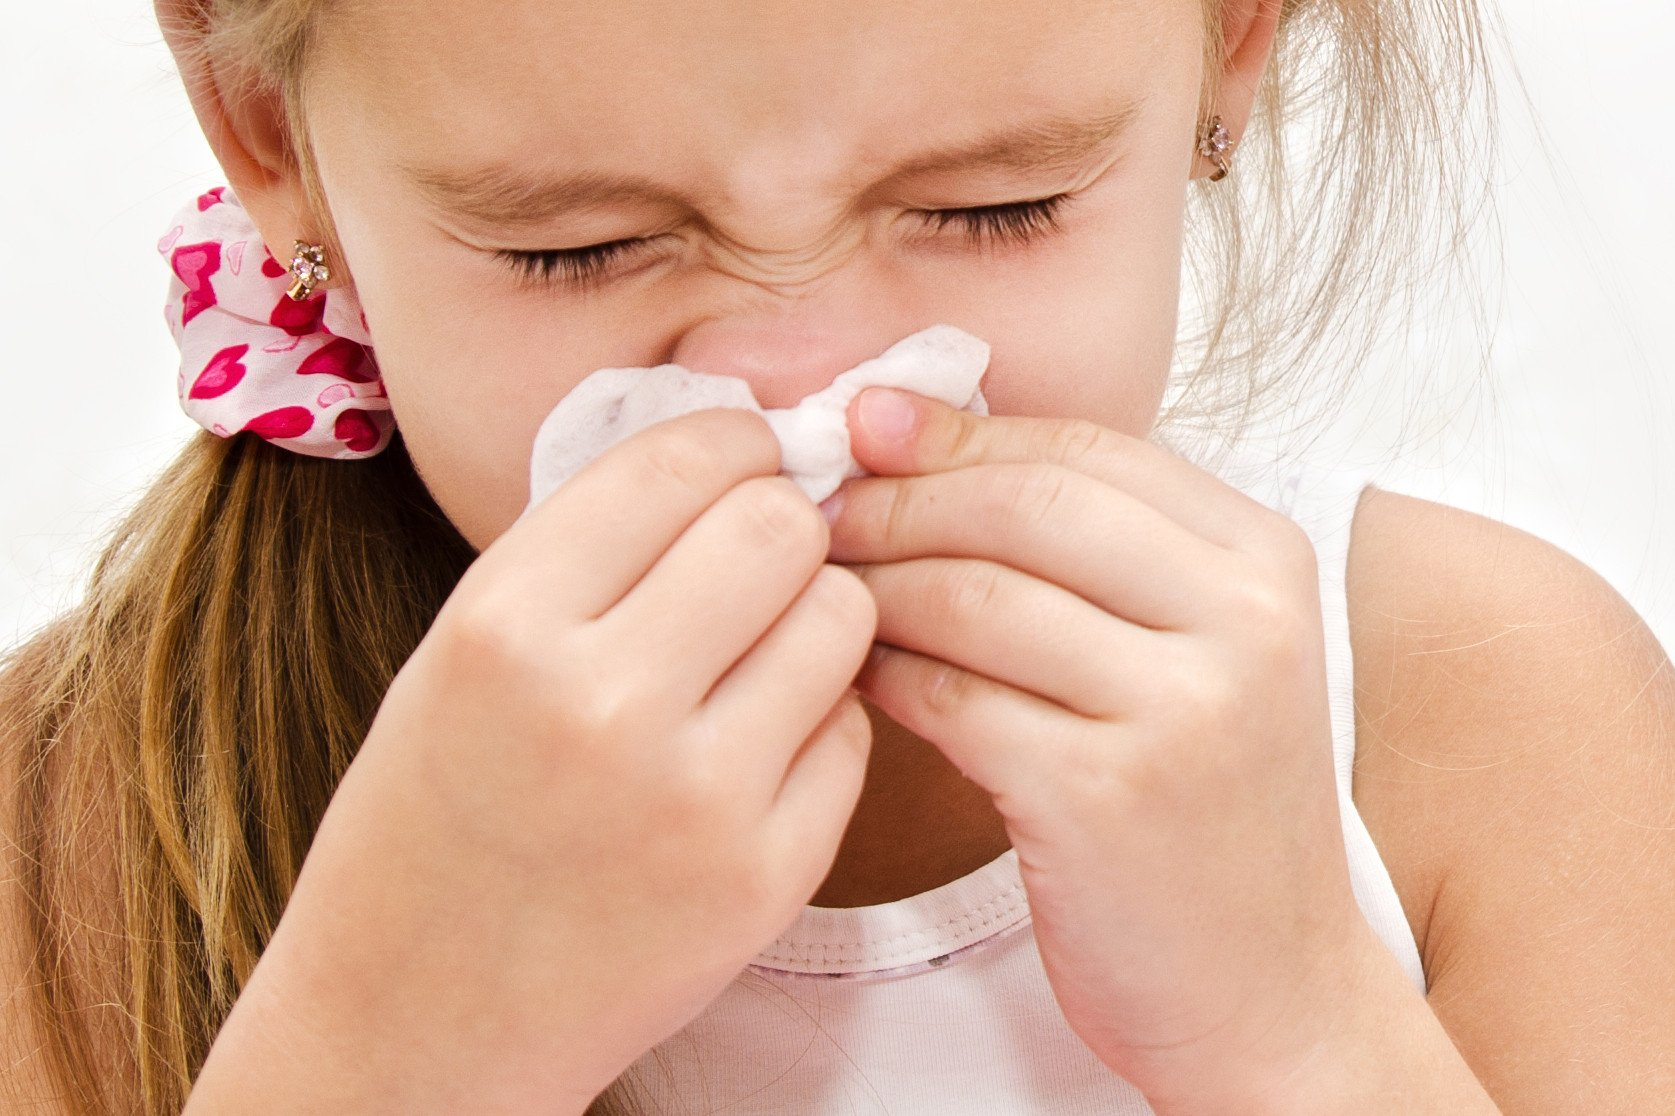 Another child dies in NYC from flu